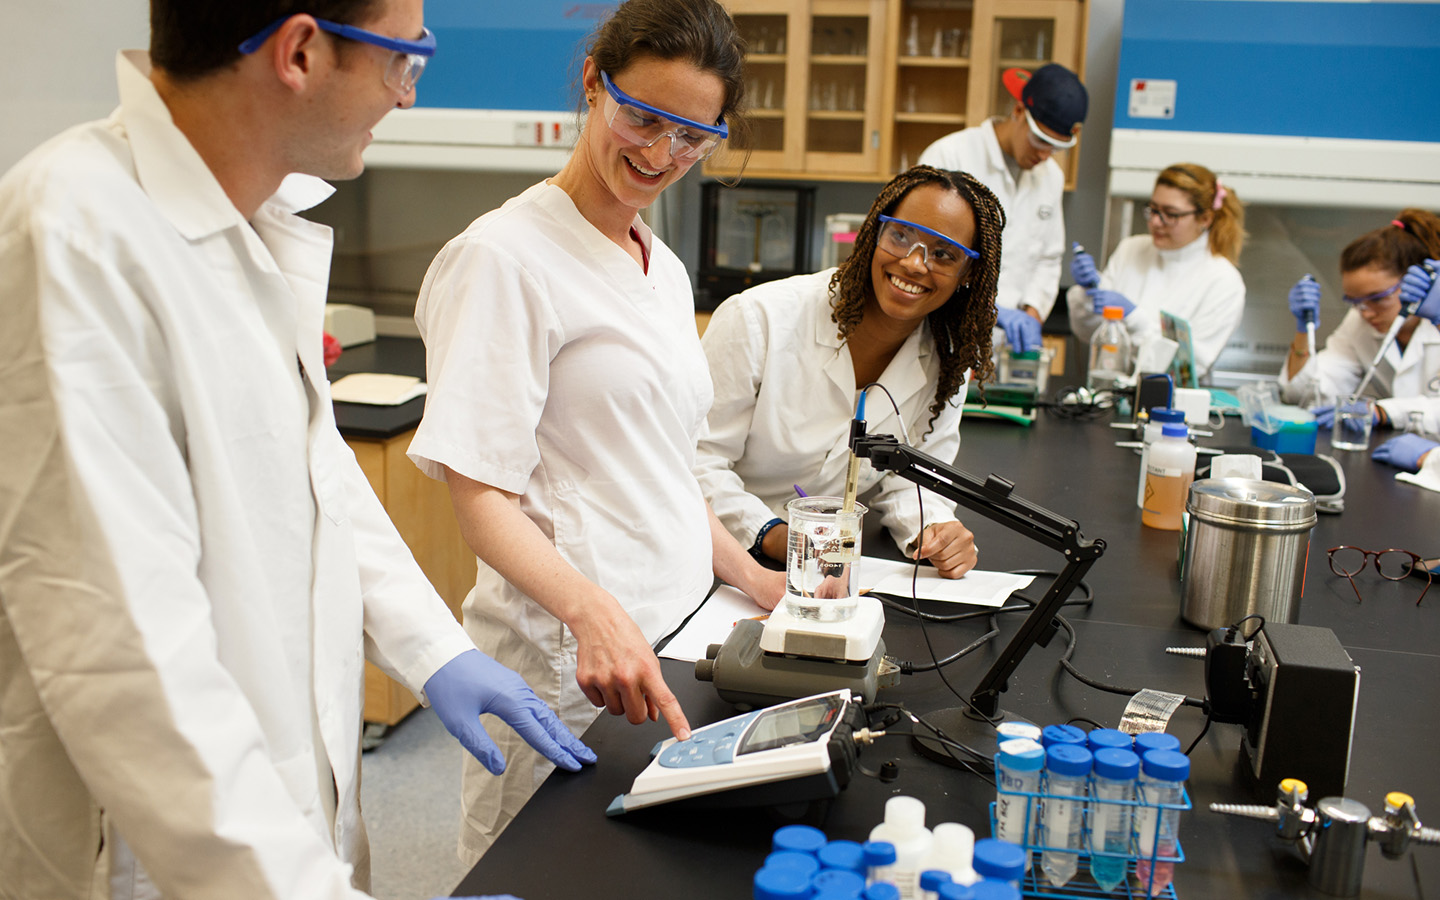 HNU Students working together in science lab